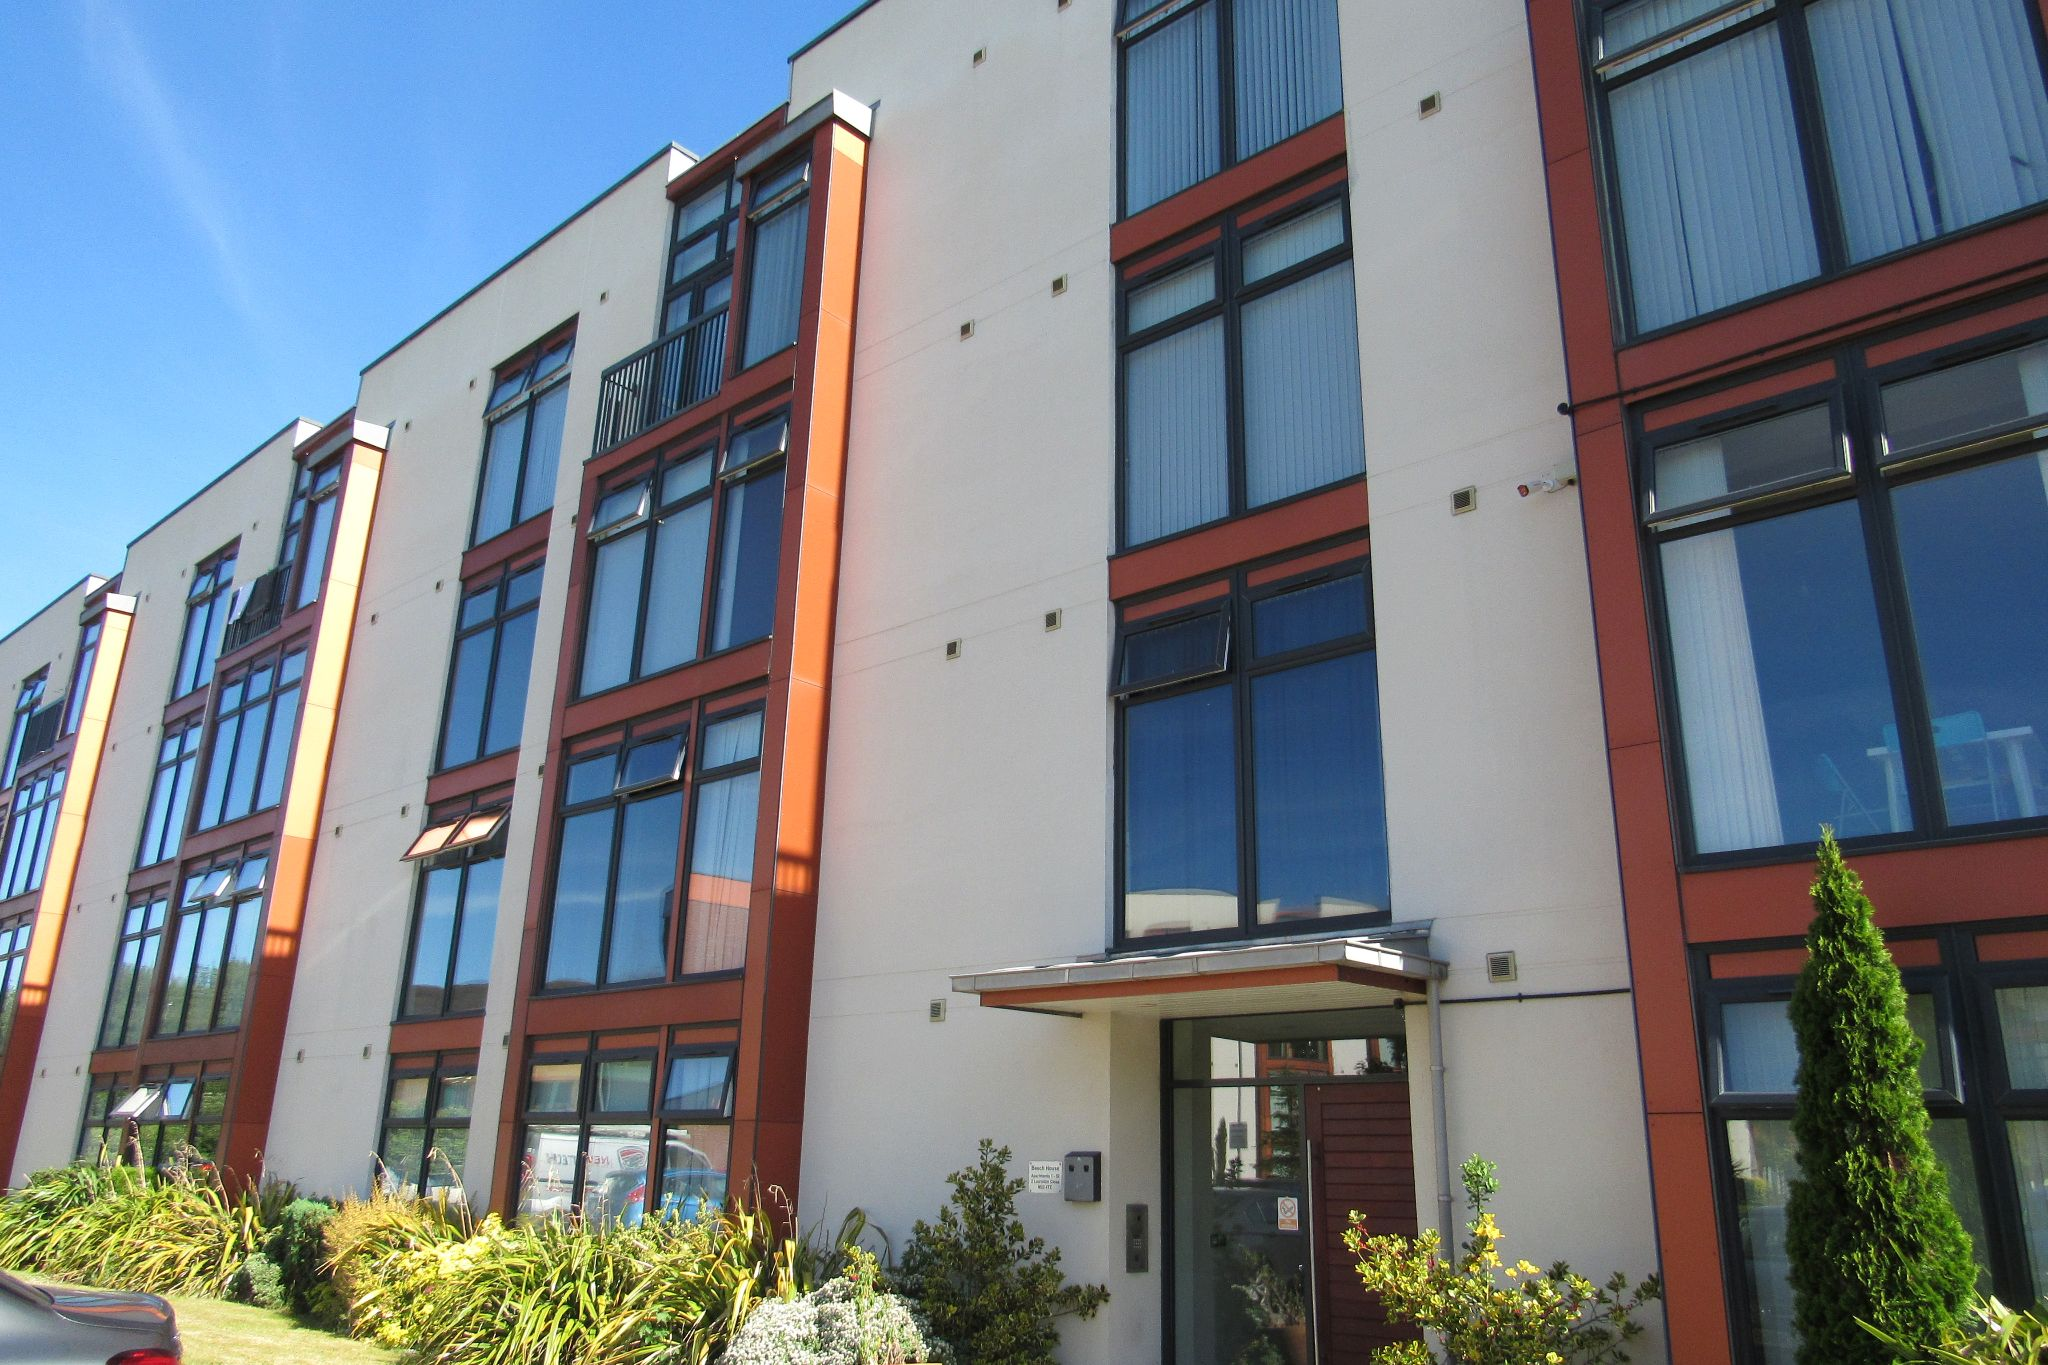 2 bedroom apartment flat/apartment SSTC in Manchester - Photograph 15.